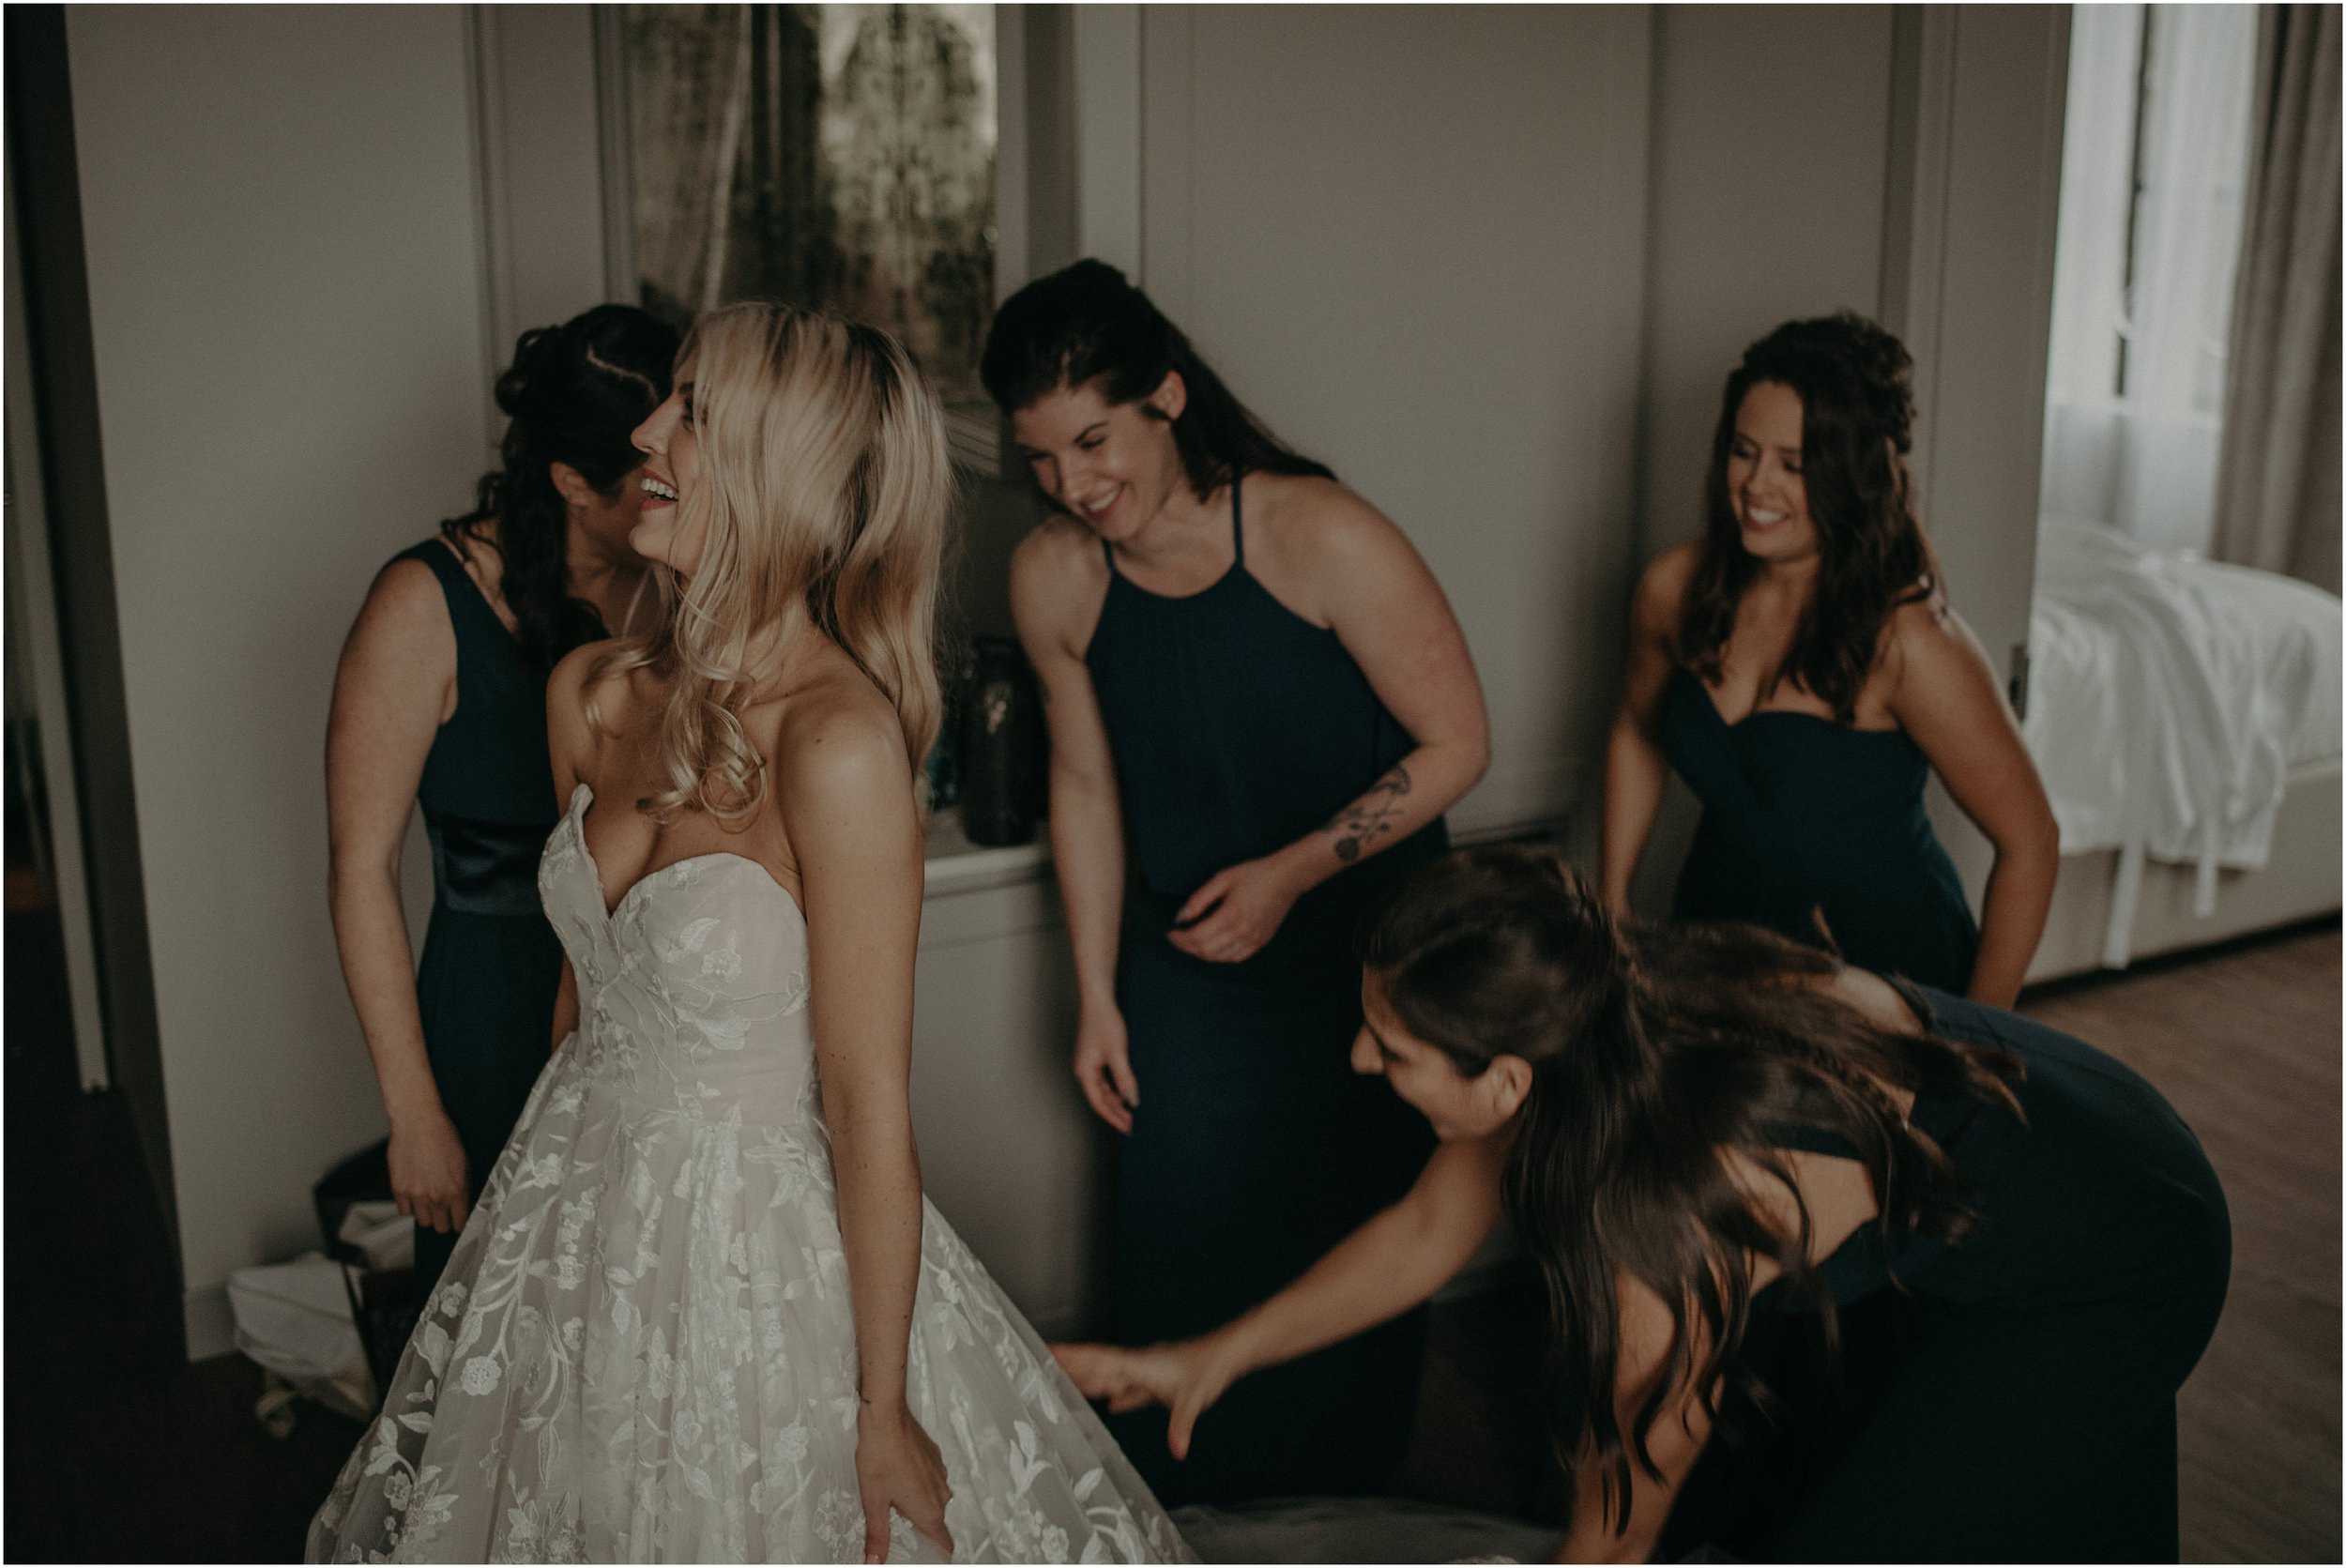 Official dress train fluffers per the bridesmaids' title